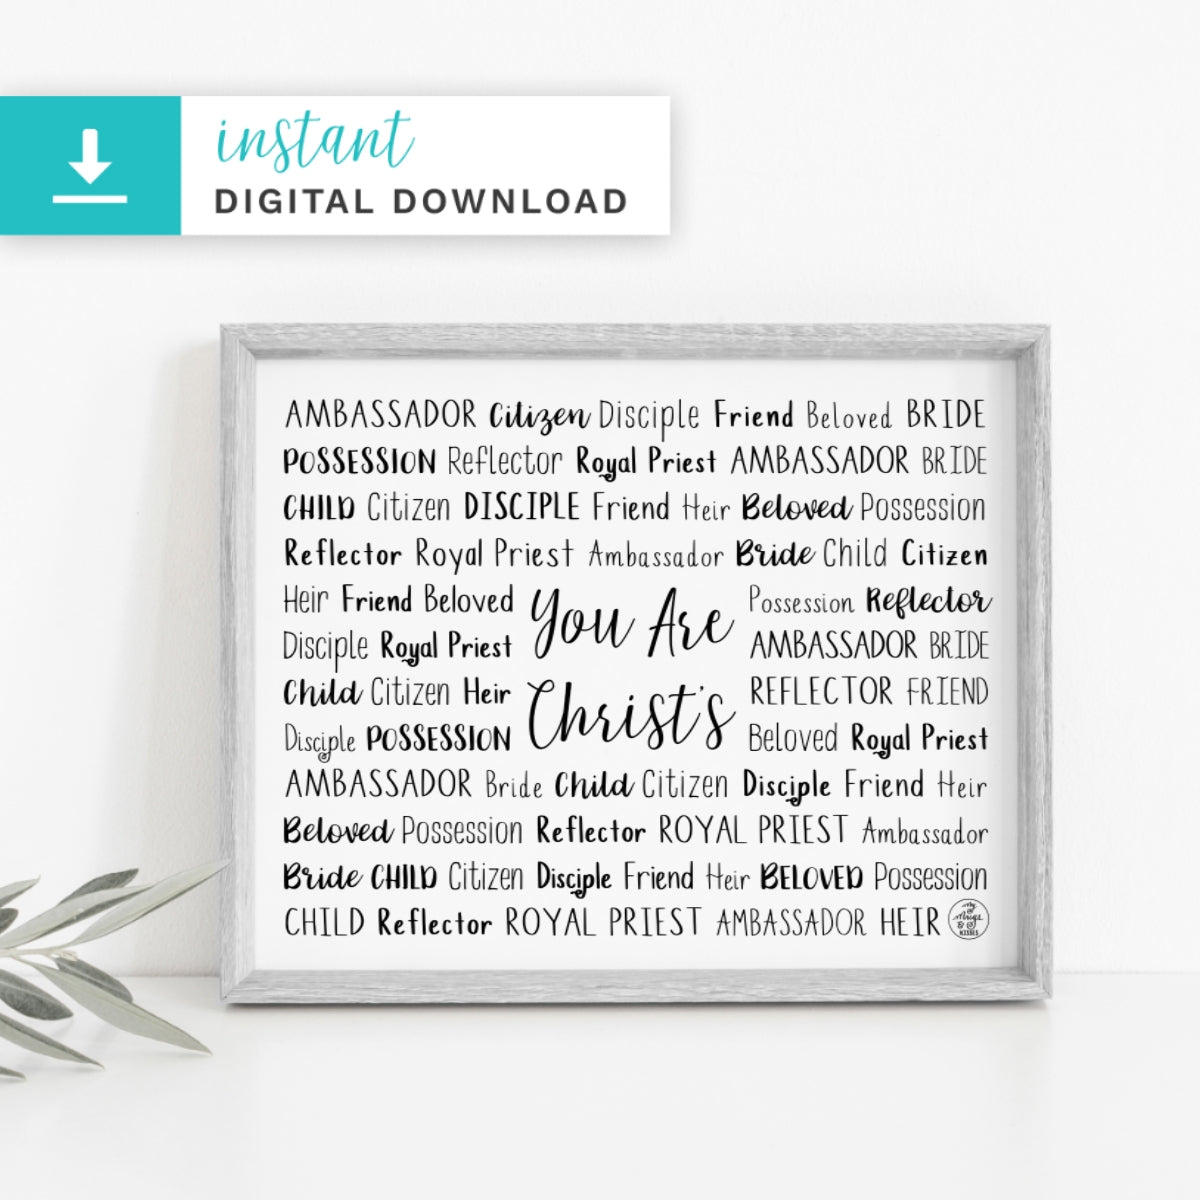 You Are Christ's Digital Download